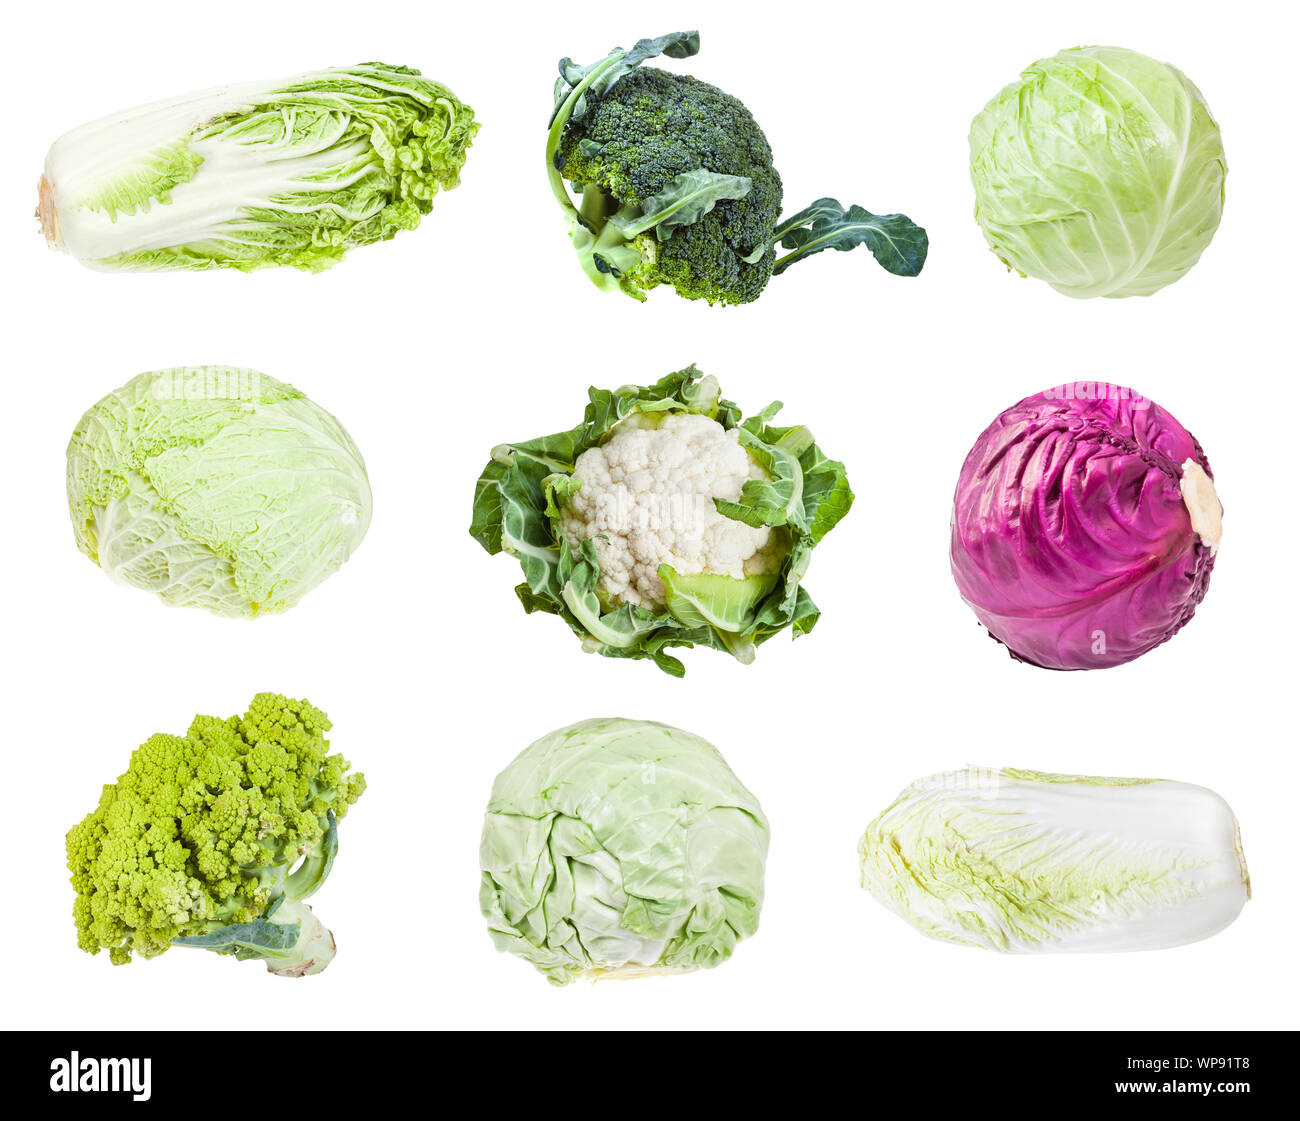 Various Headed Cabbages Romanesco Broccoli Cauliflower White Cabbage Red Cabbage Napa Cabbage Savoy Cabbage Isolated On White Background Stock Photo Alamy